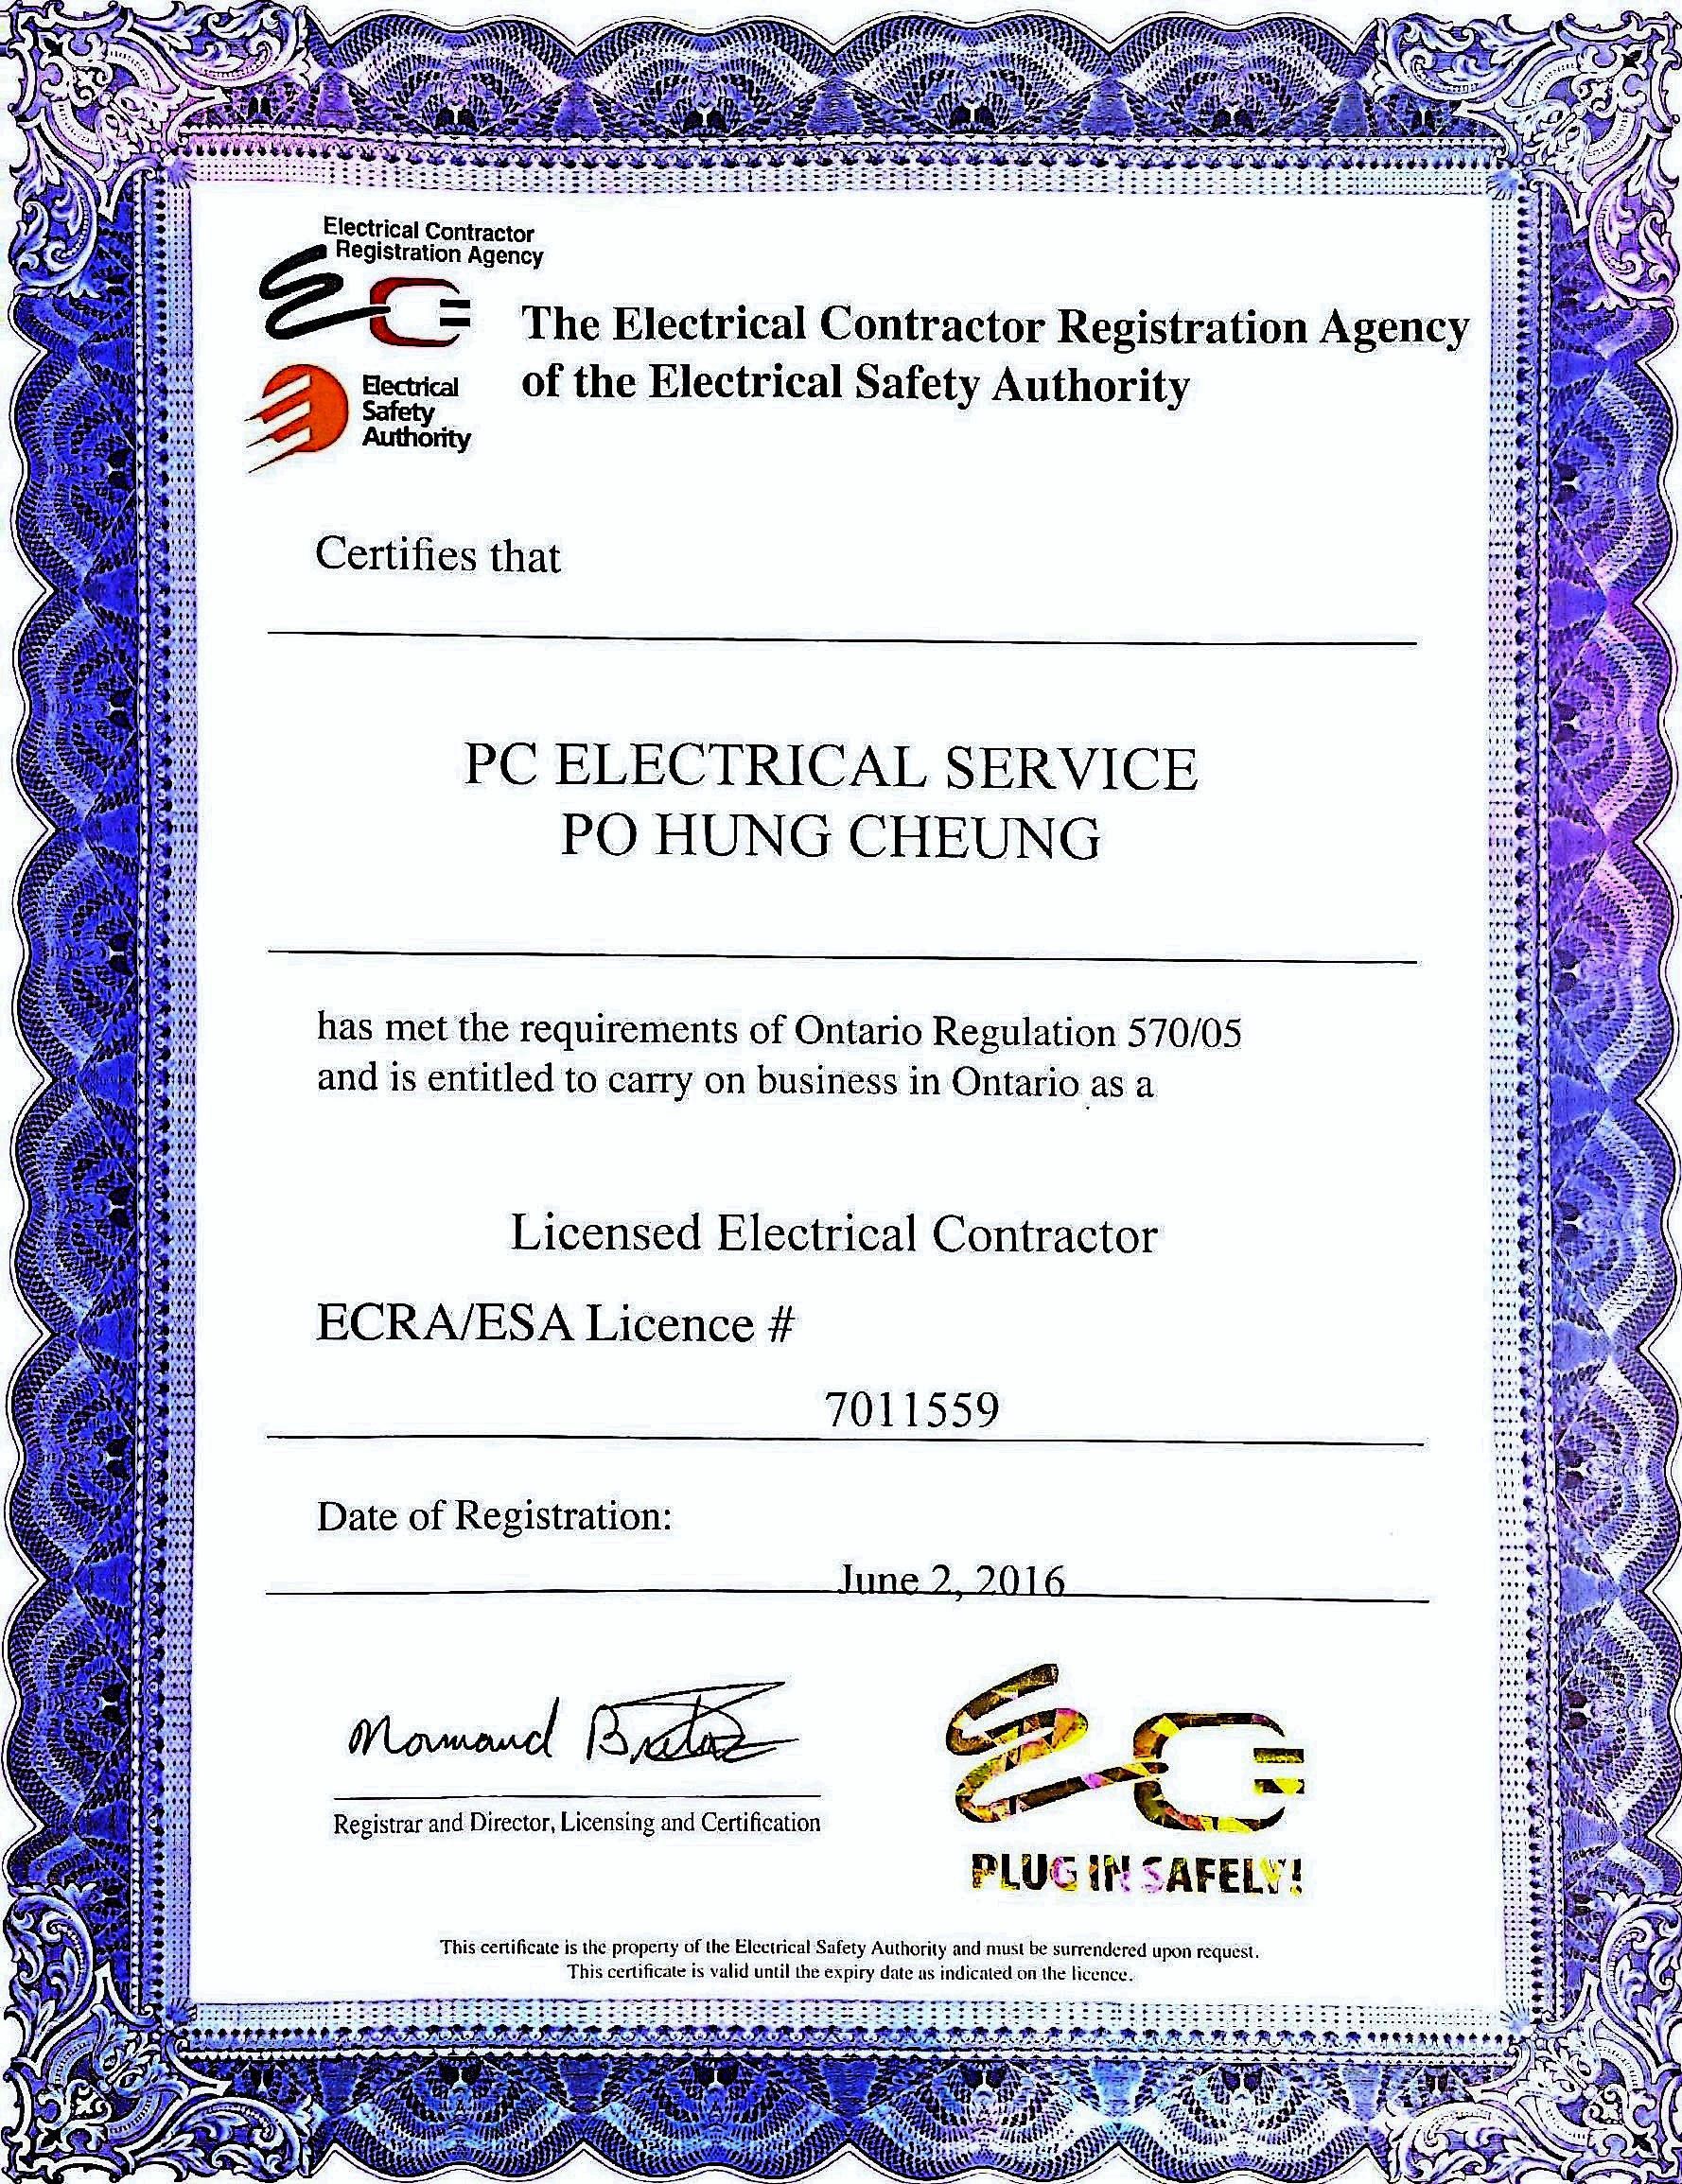 Pc electrical service tel 647 502 0813 text or call for free register with esa electrical safety authority licence 7011559 and certificate of registration ontario master business licence 260534896 xflitez Images